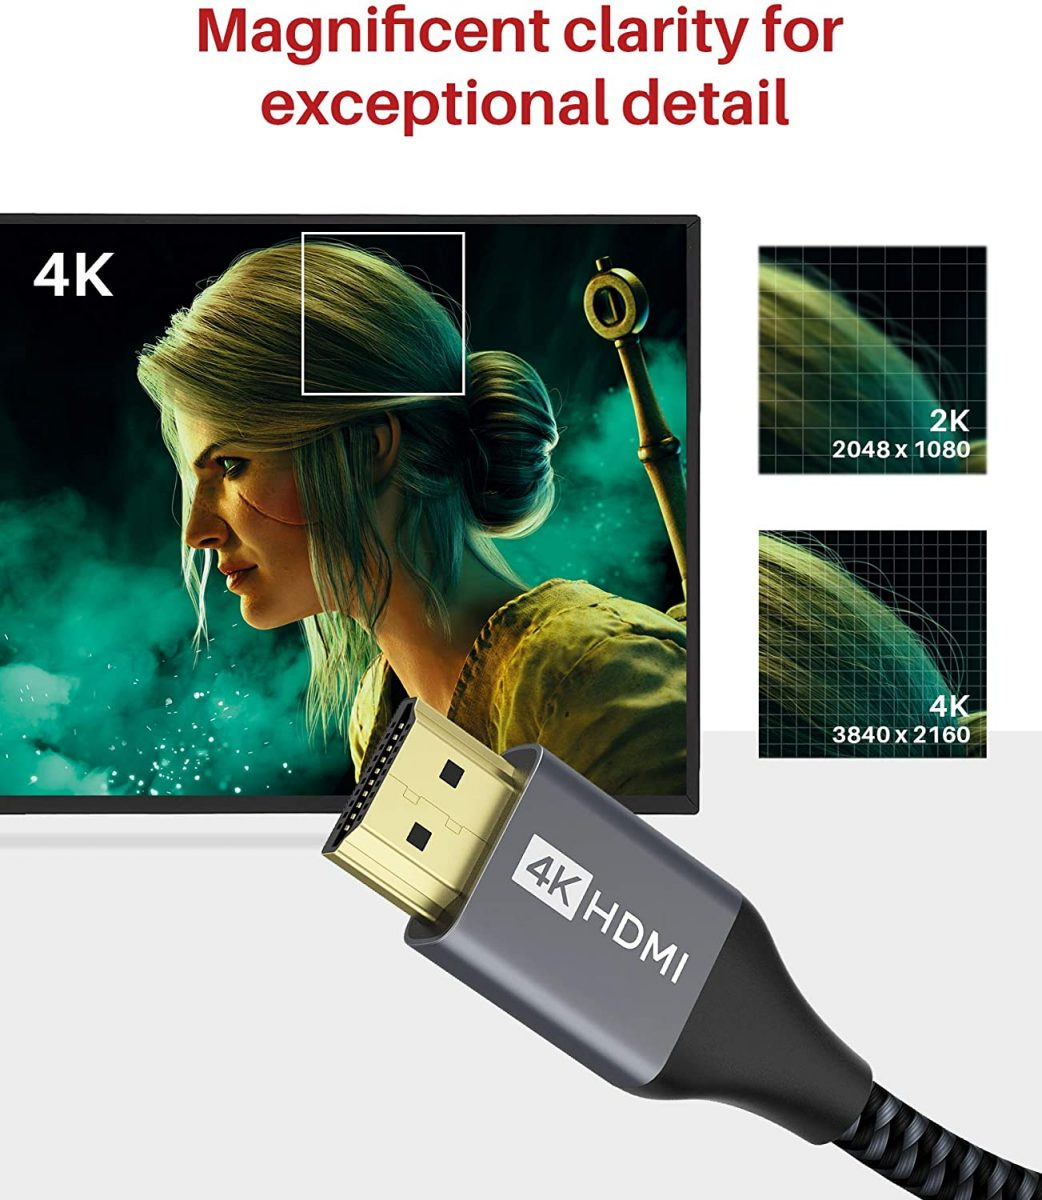 Cable HDMI 2.0 4K iVanky barato scaled SuperChollos